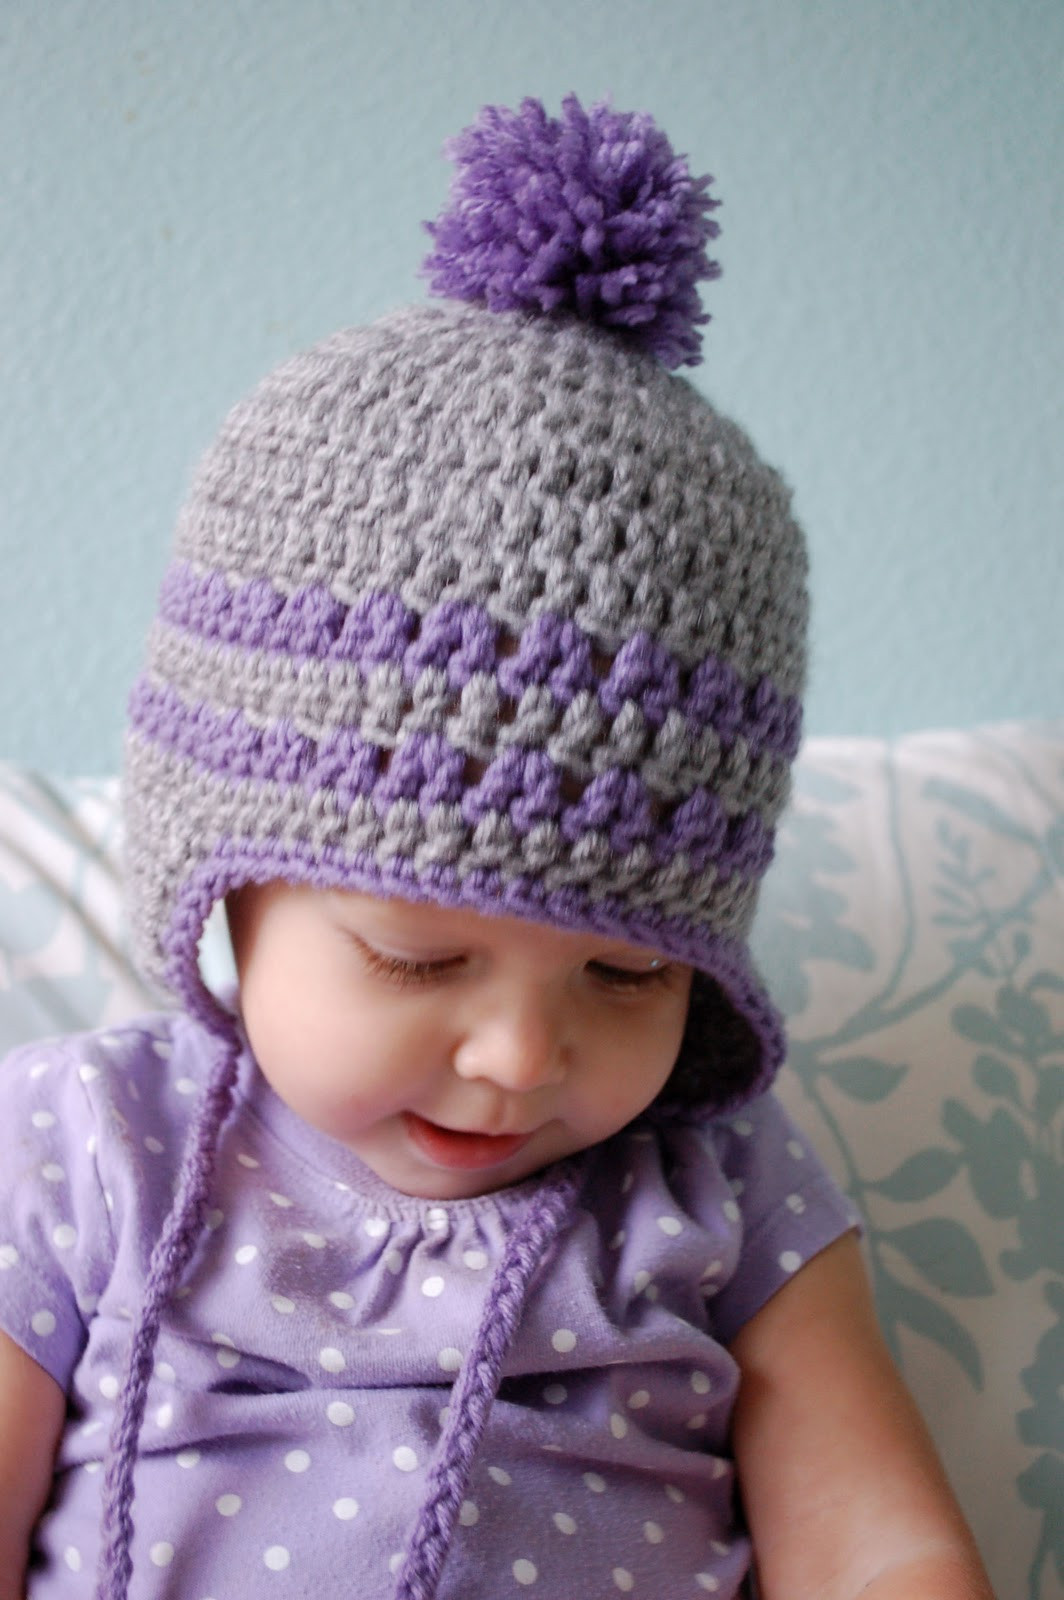 Awesome Alli Crafts Free Pattern Earflap Hat 9 12 Months Free Crochet Infant Hat Patterns Of Contemporary 50 Models Free Crochet Infant Hat Patterns